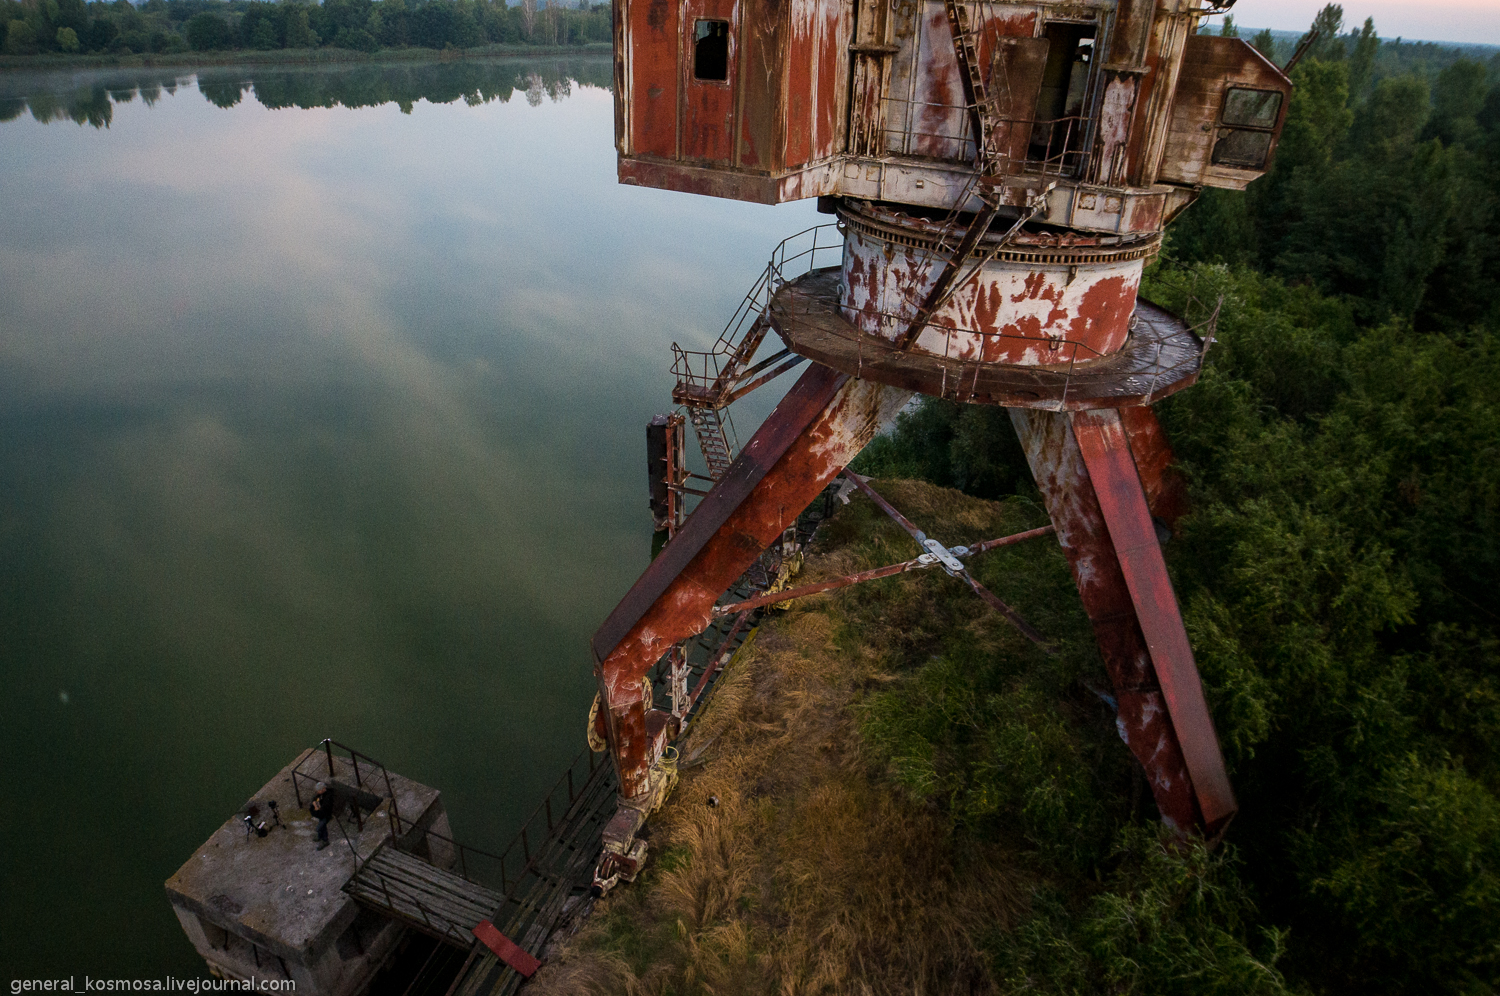 _igp1017 ILLEGAL TOURISM: CHERNOBYL ZONE BY STALKER'S EYES